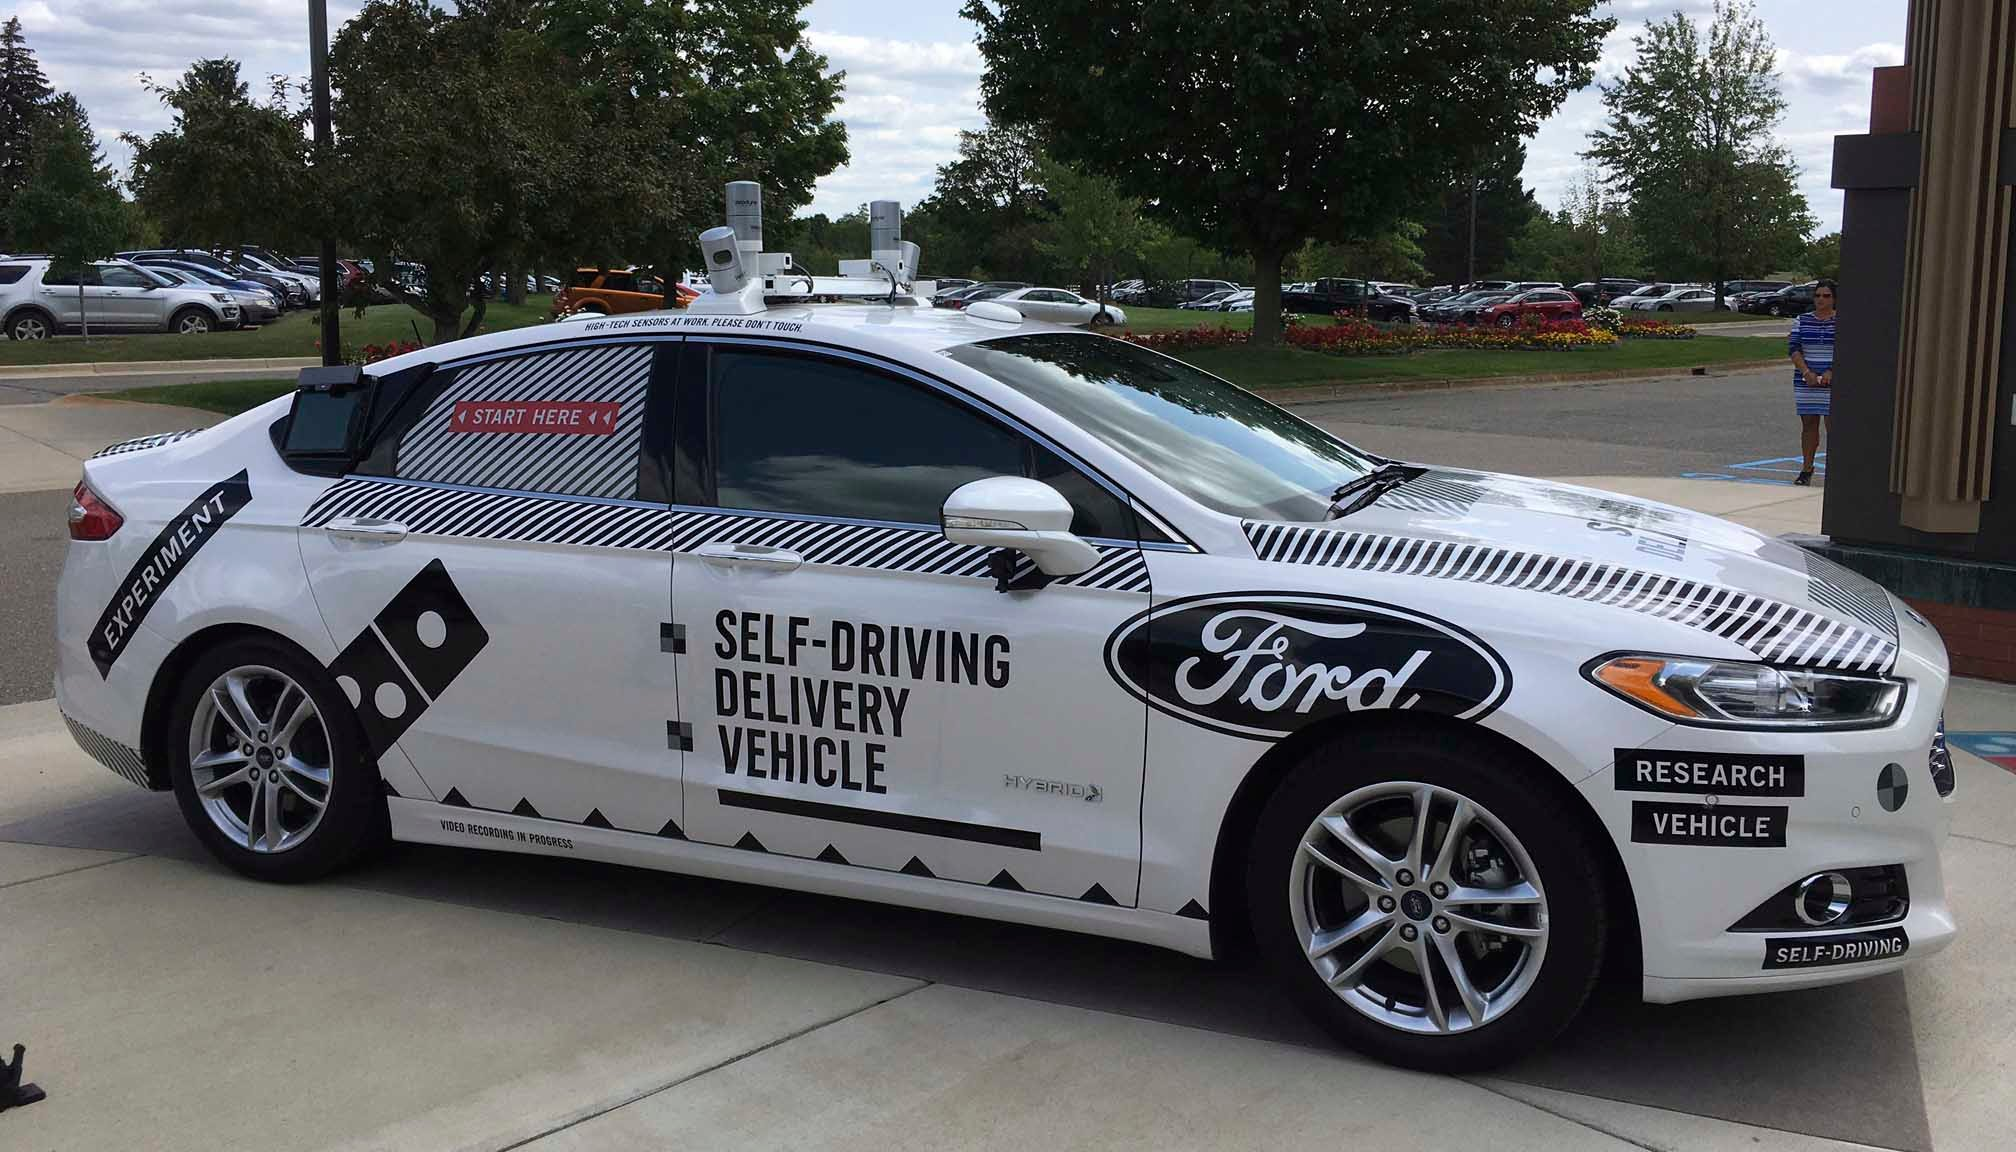 This Friday, Aug. 24, photo shows the specially designed delivery car that Ford Motor Co. and Domino's Pizza will use to test self-driving pizza deliveries, at Domino's headquarters in Ann Arbor, MI. (AP Photo/Dee-Ann Durbin)